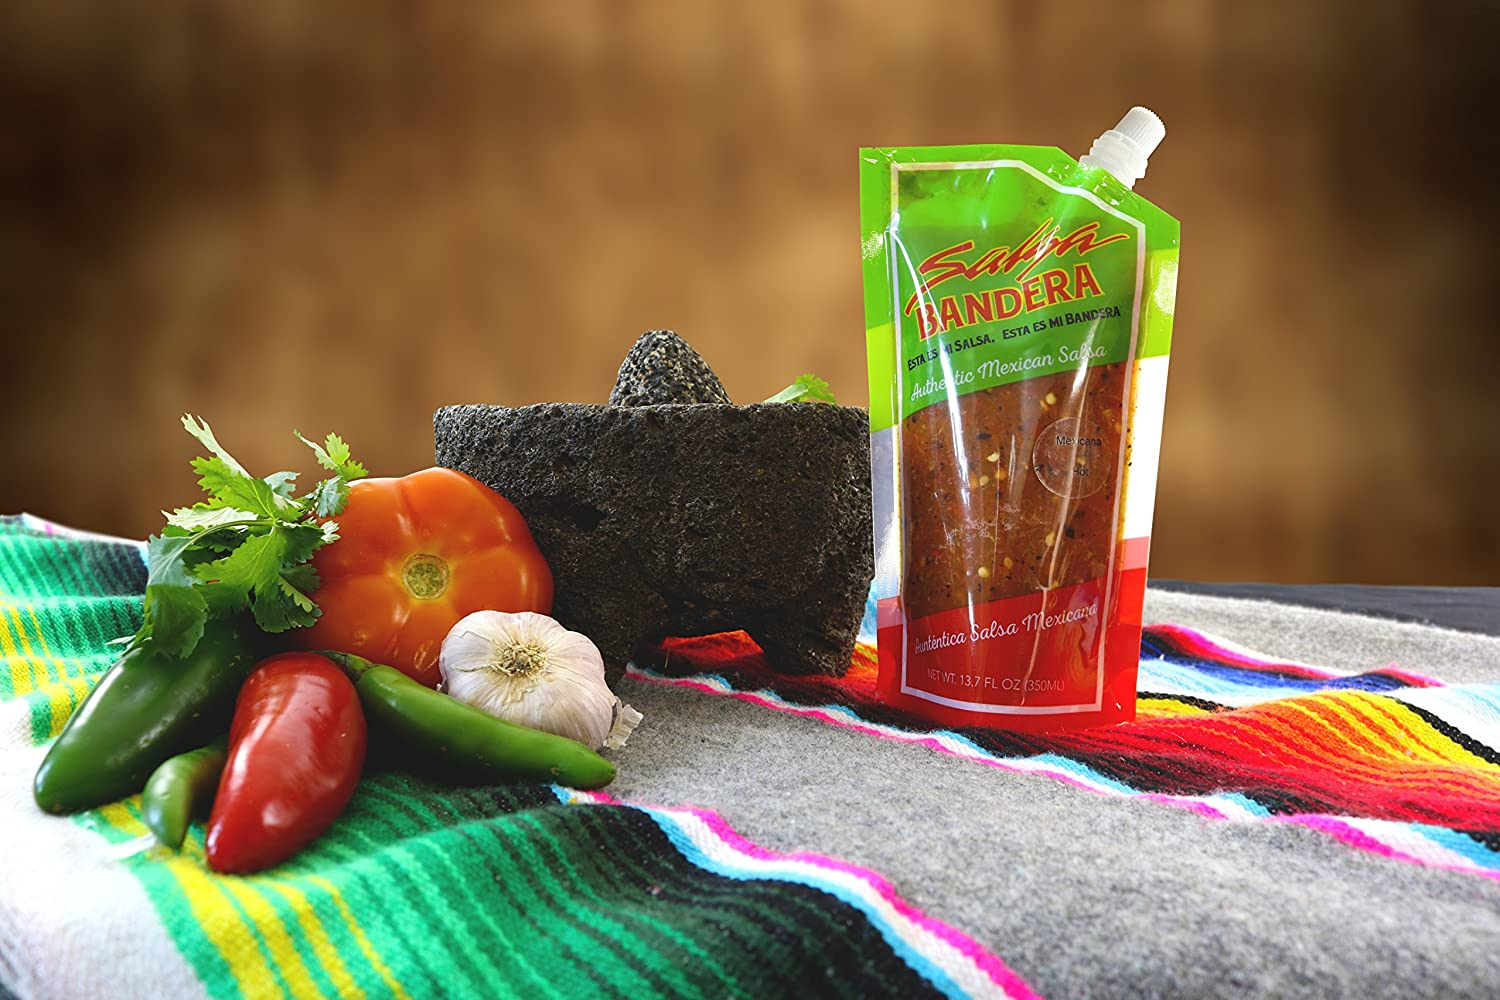 Amazon.com : Bundle of Salsa Bandera Authentic Mexican Salsa in Four Individually Packed Flavors Hot Sauce Gift Set : Grocery & Gourmet Food